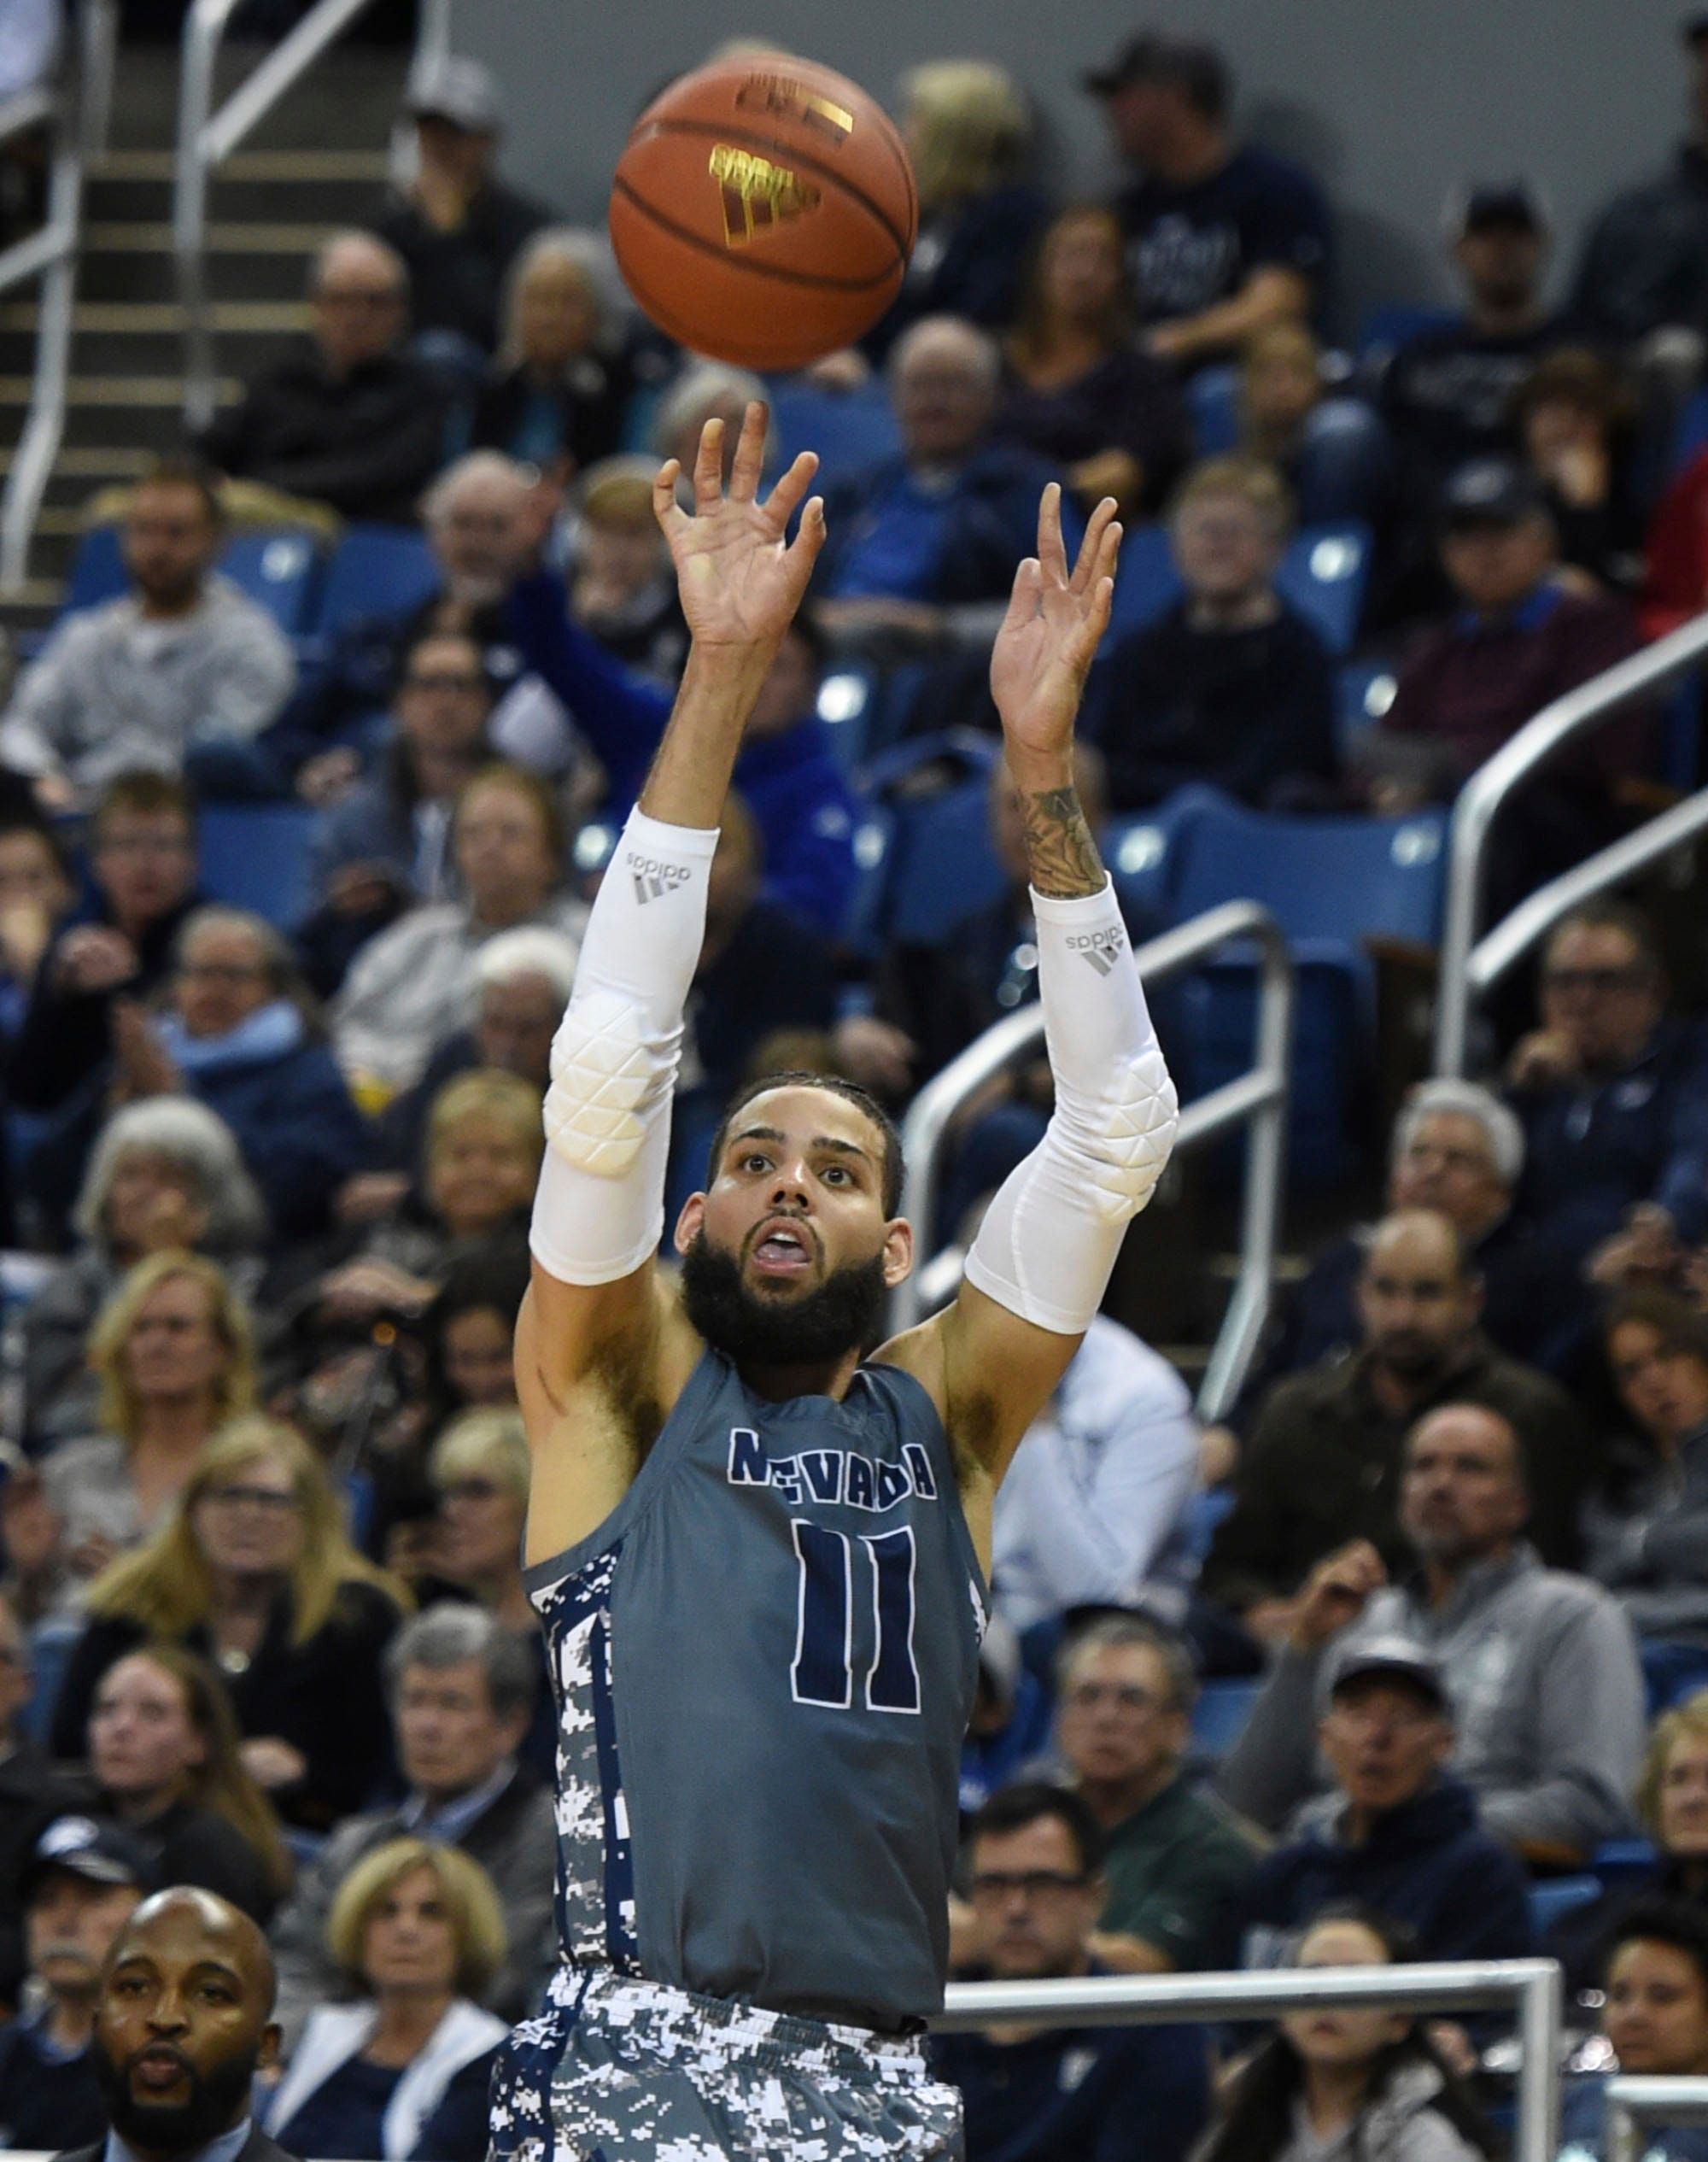 Martin scores 22 points, No. 7 Nevada beats Pacific 83-61